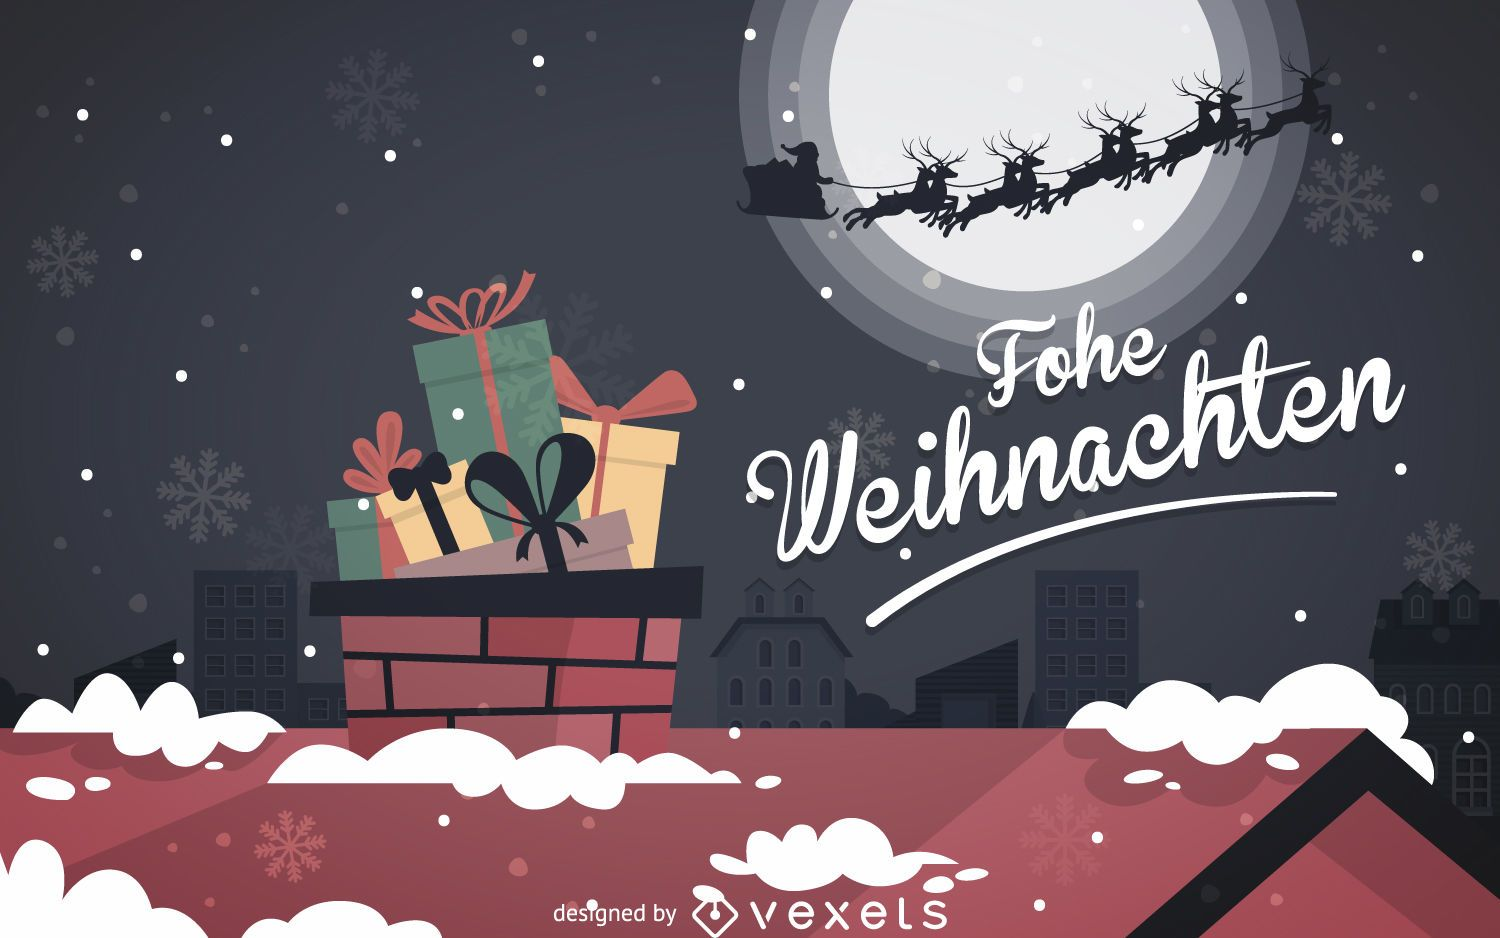 Design Weihnachten Frohe Weihnachten Flat Design Vector Download